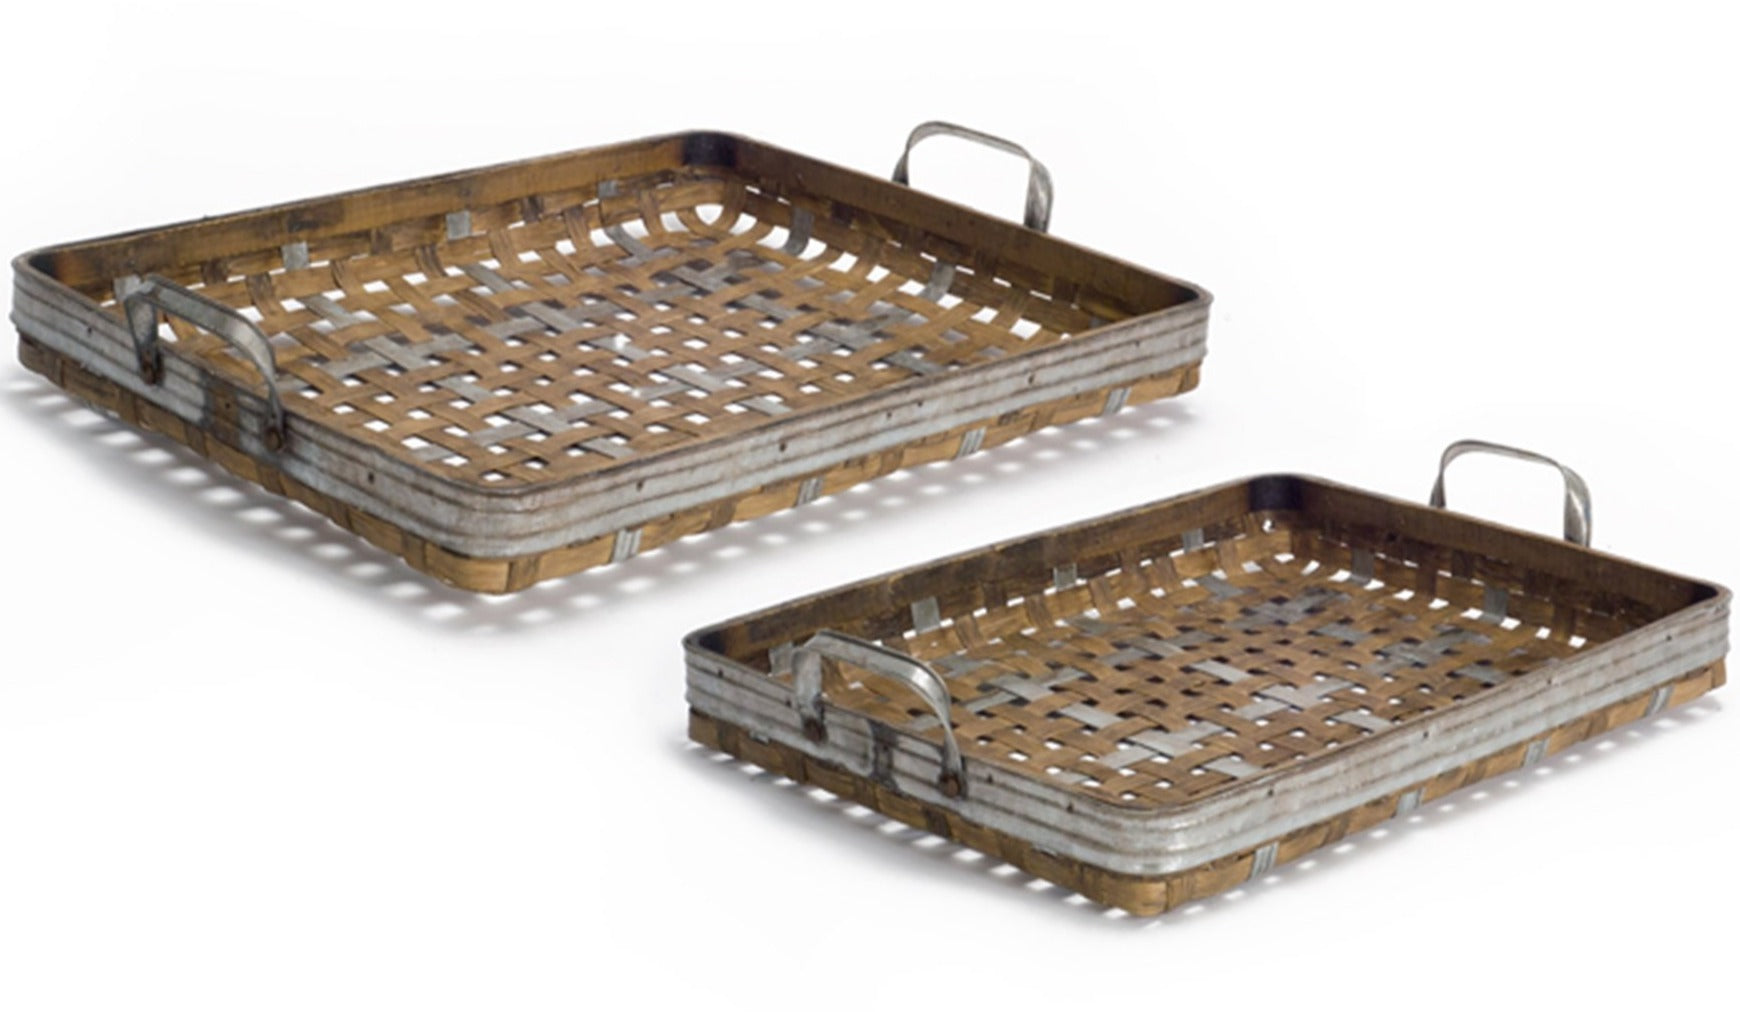 Woven Bamboo and Metal Tray - Set of 2